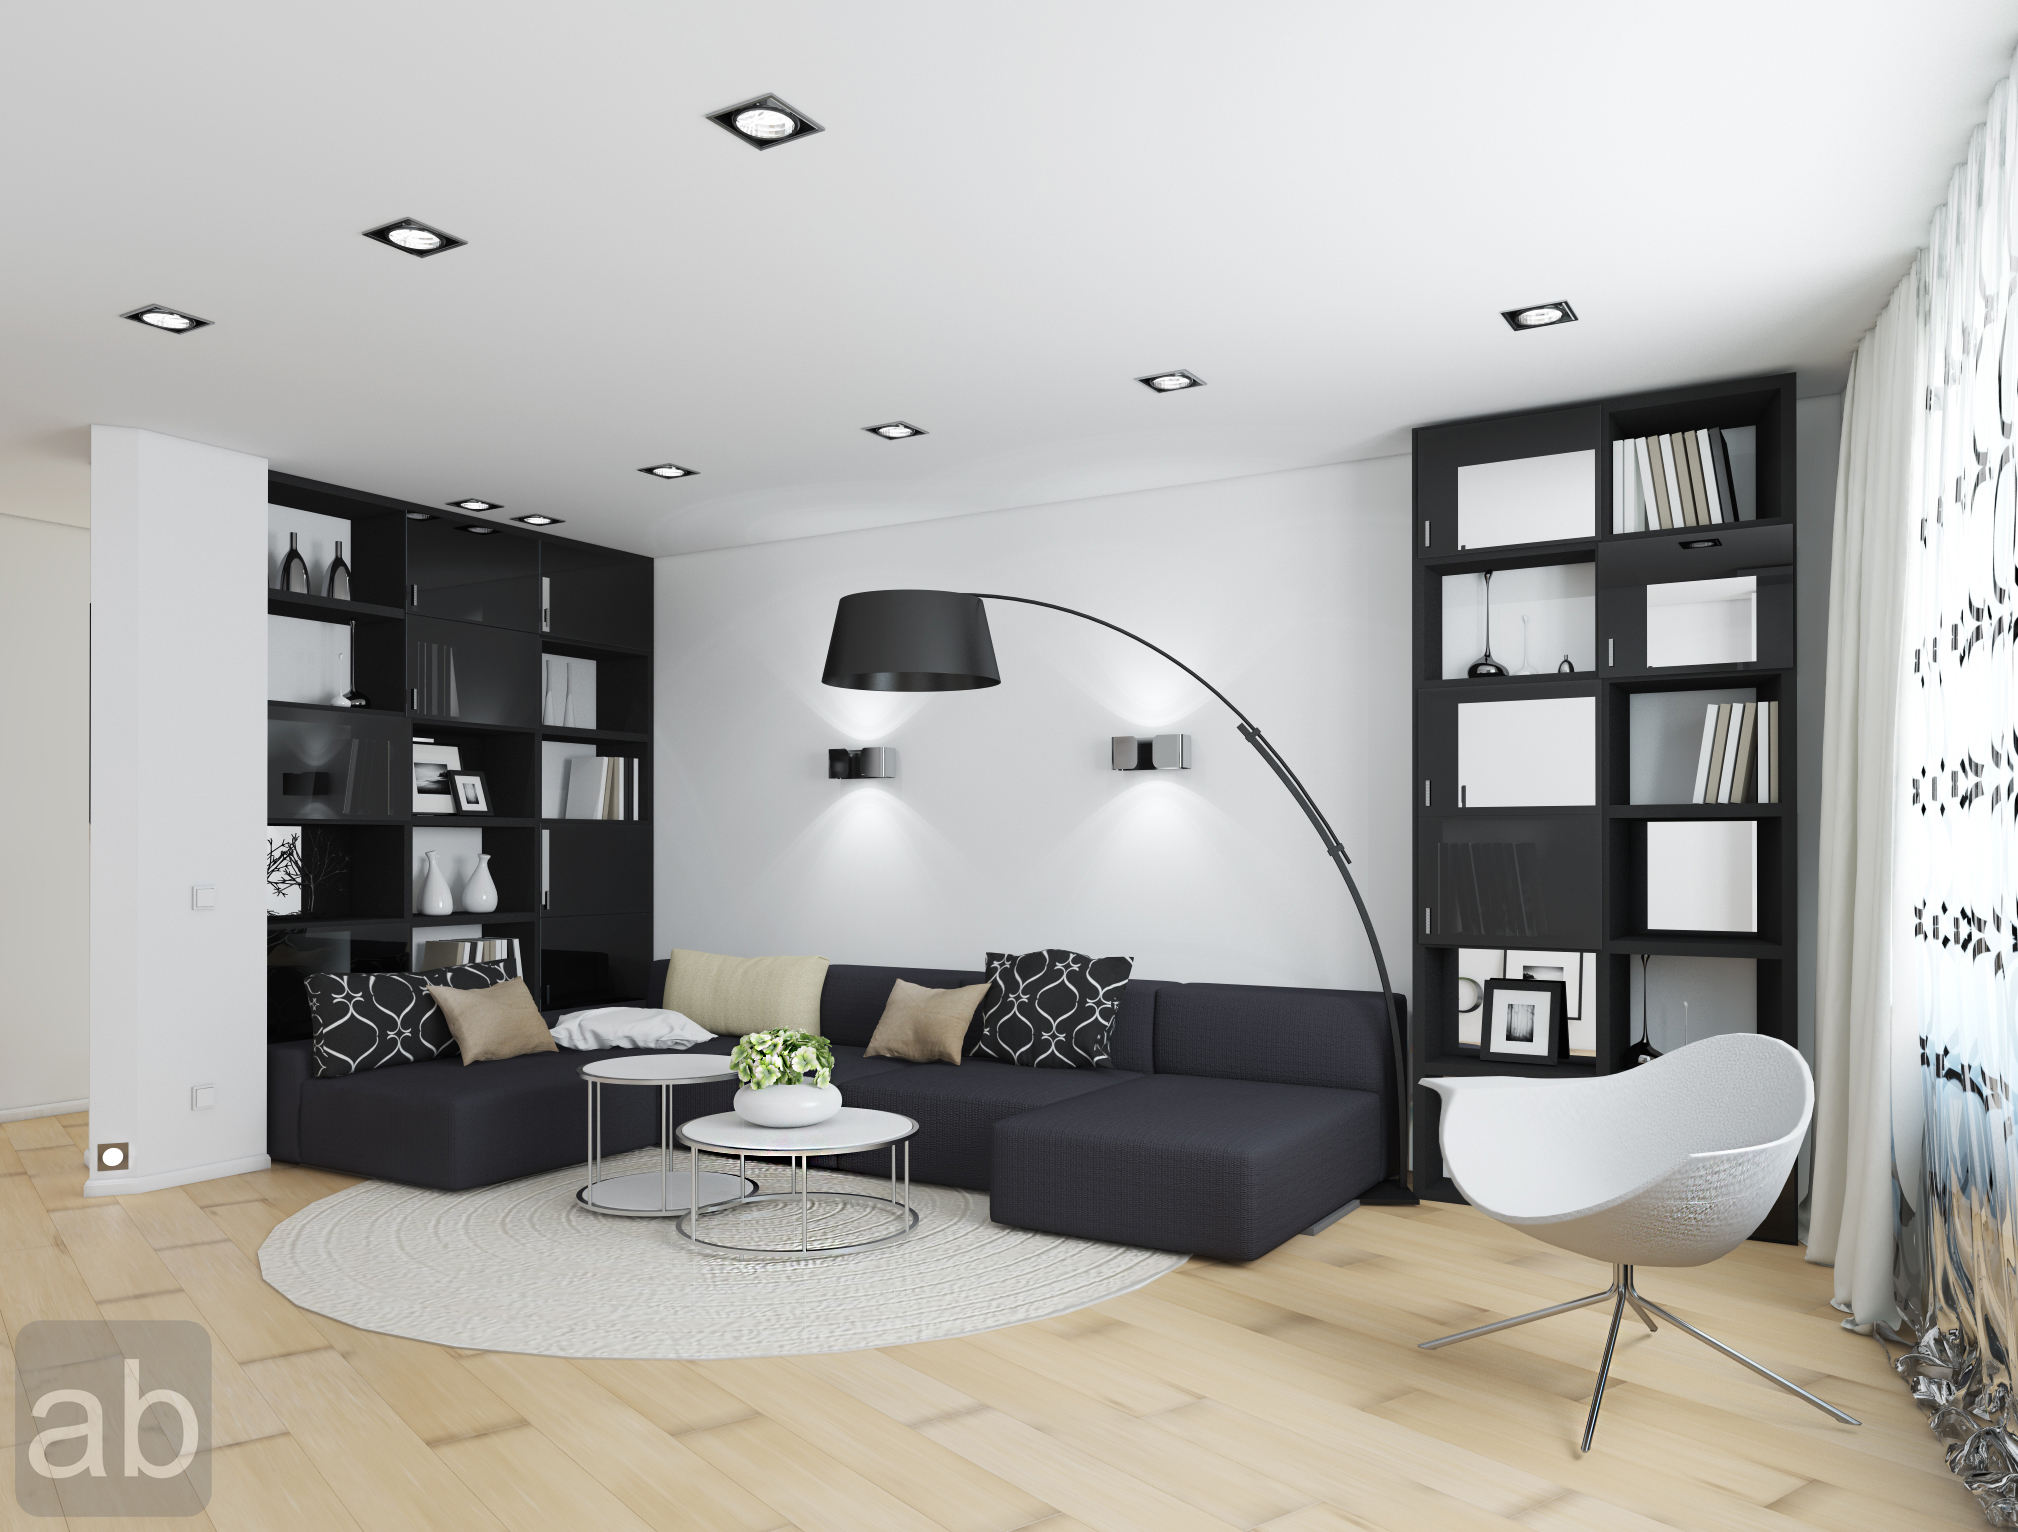 Black and white living room ideas home designs White and black modern living room